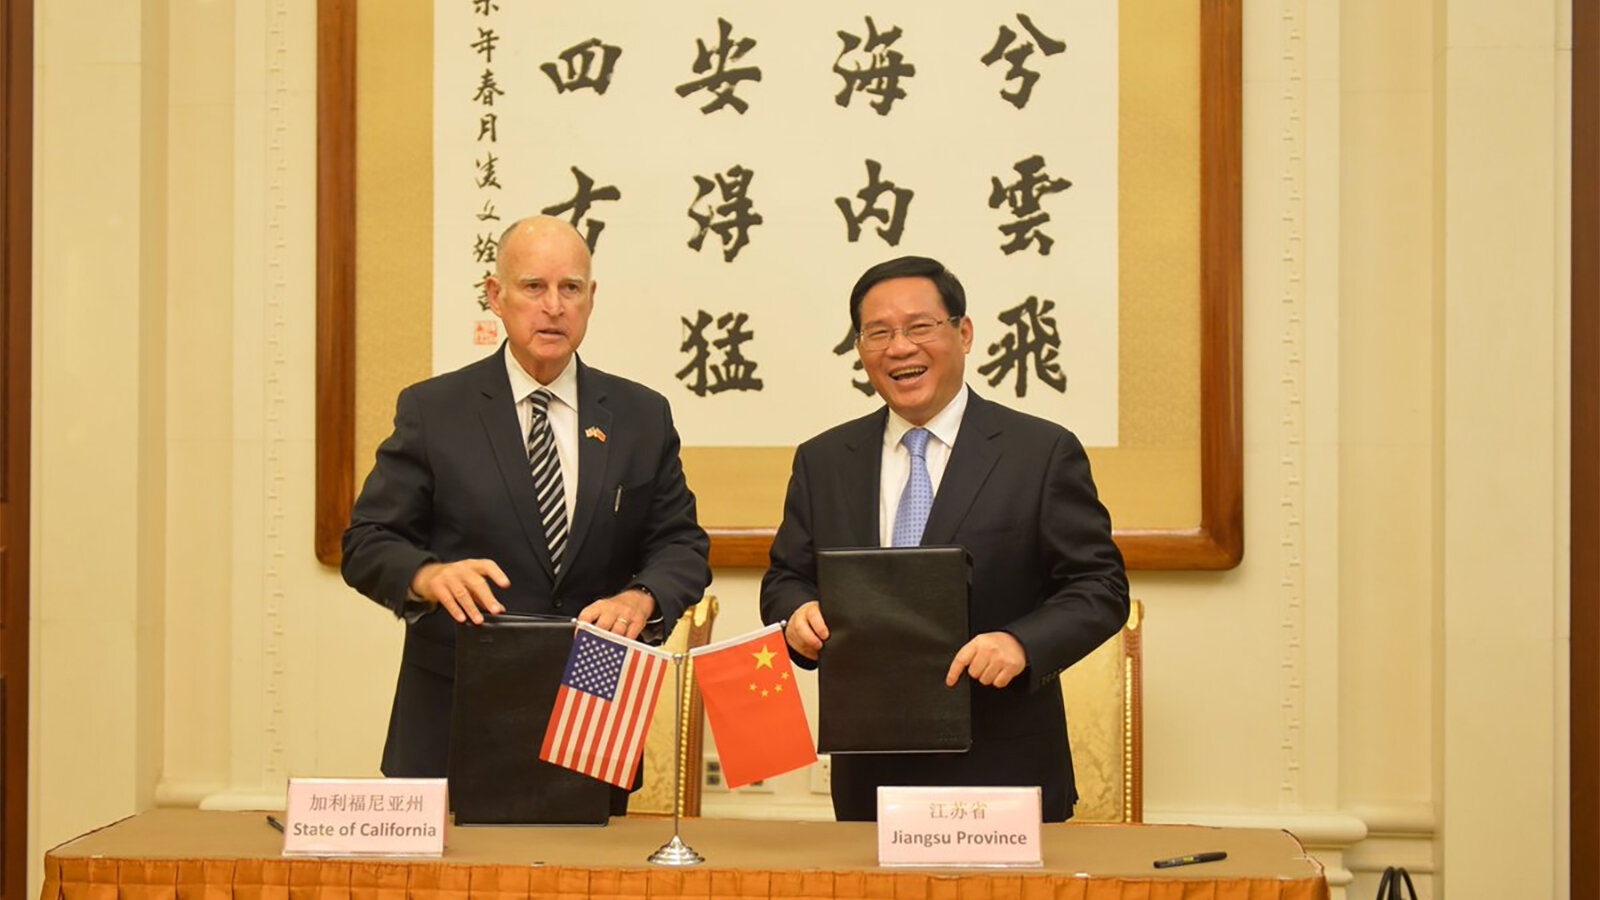 Jerry Brown and Xi Jinping in 2017 (Twitter)